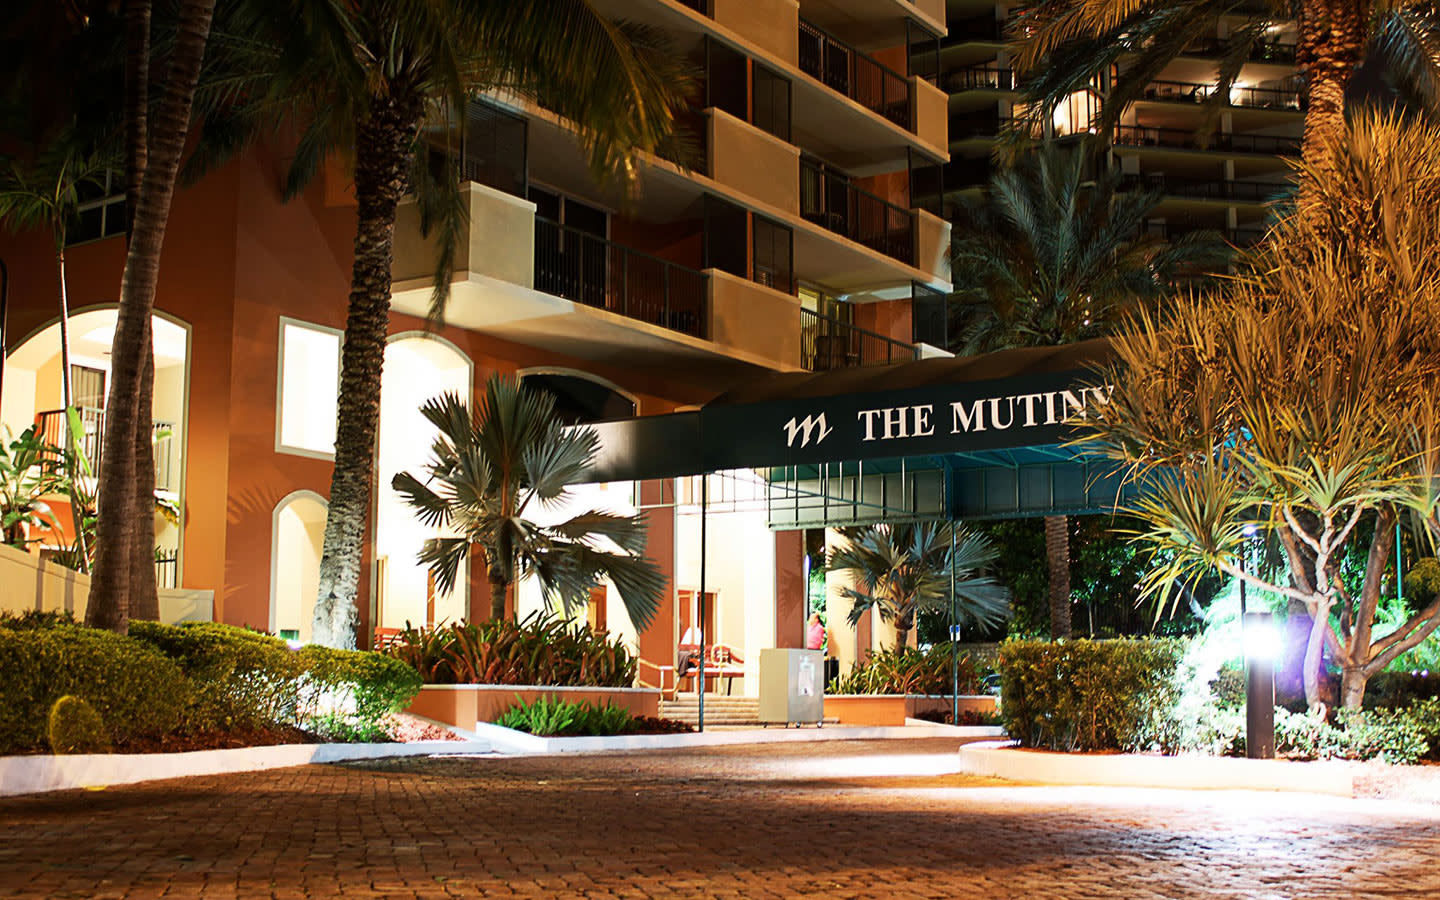 The Mutiny Hotel entrance